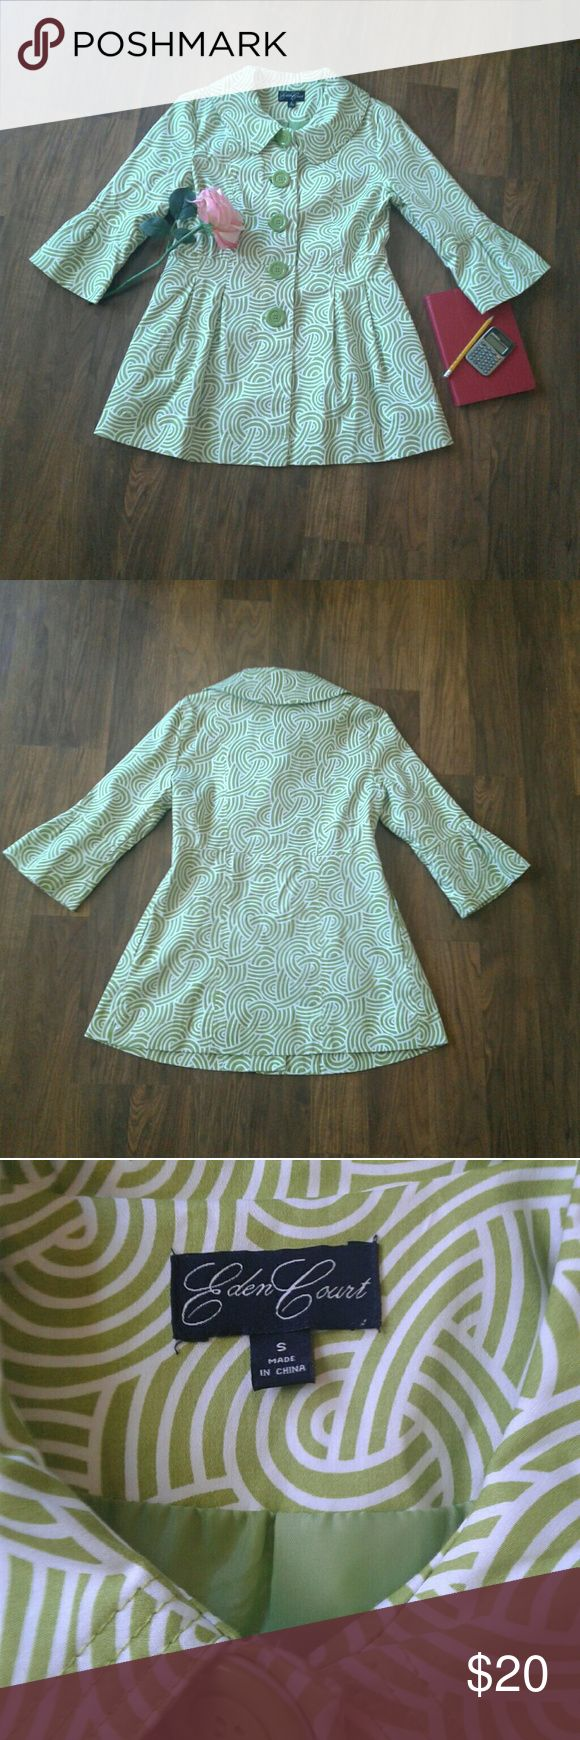 3/4 Sleeve Peter Pan Collar Geo Print Jacket Sz S 3/4 Sleeve Peter Pan Collar Geo Print Jacket Sz S Size small Lightweight  Good condition - normal wear  Colors green & white Measurements and fabric content picture provided for review  Item is stored in a pet & smoke free environment Eden Court Jackets & Coats